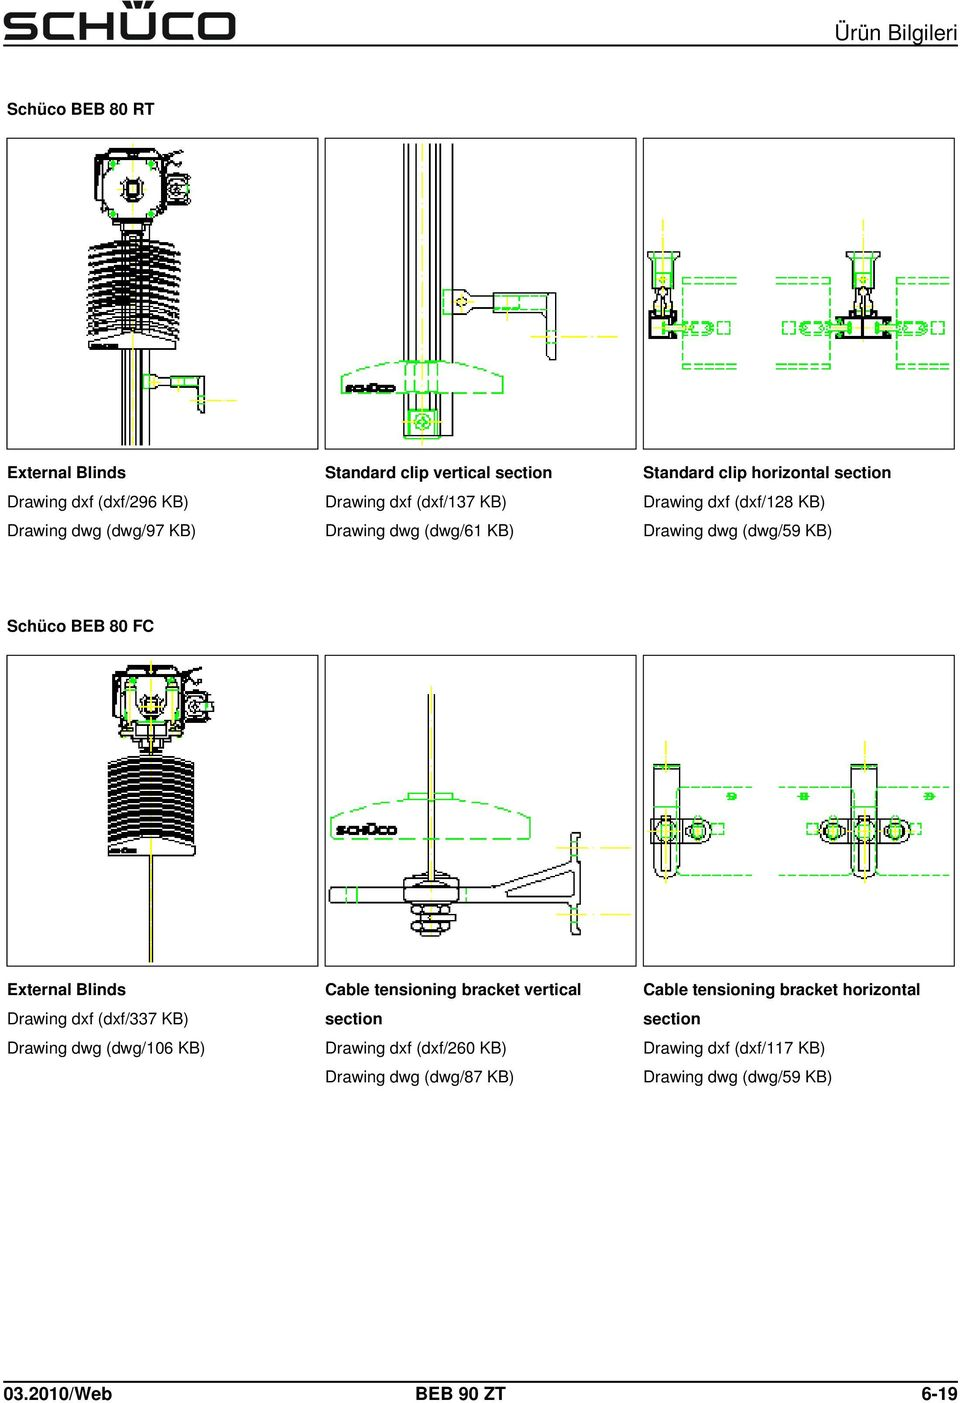 External Blinds Drawing dxf (dxf/337 KB) Drawing dwg (dwg/106 KB) Cable tensioning bracket vertical Drawing dxf (dxf/260 KB)